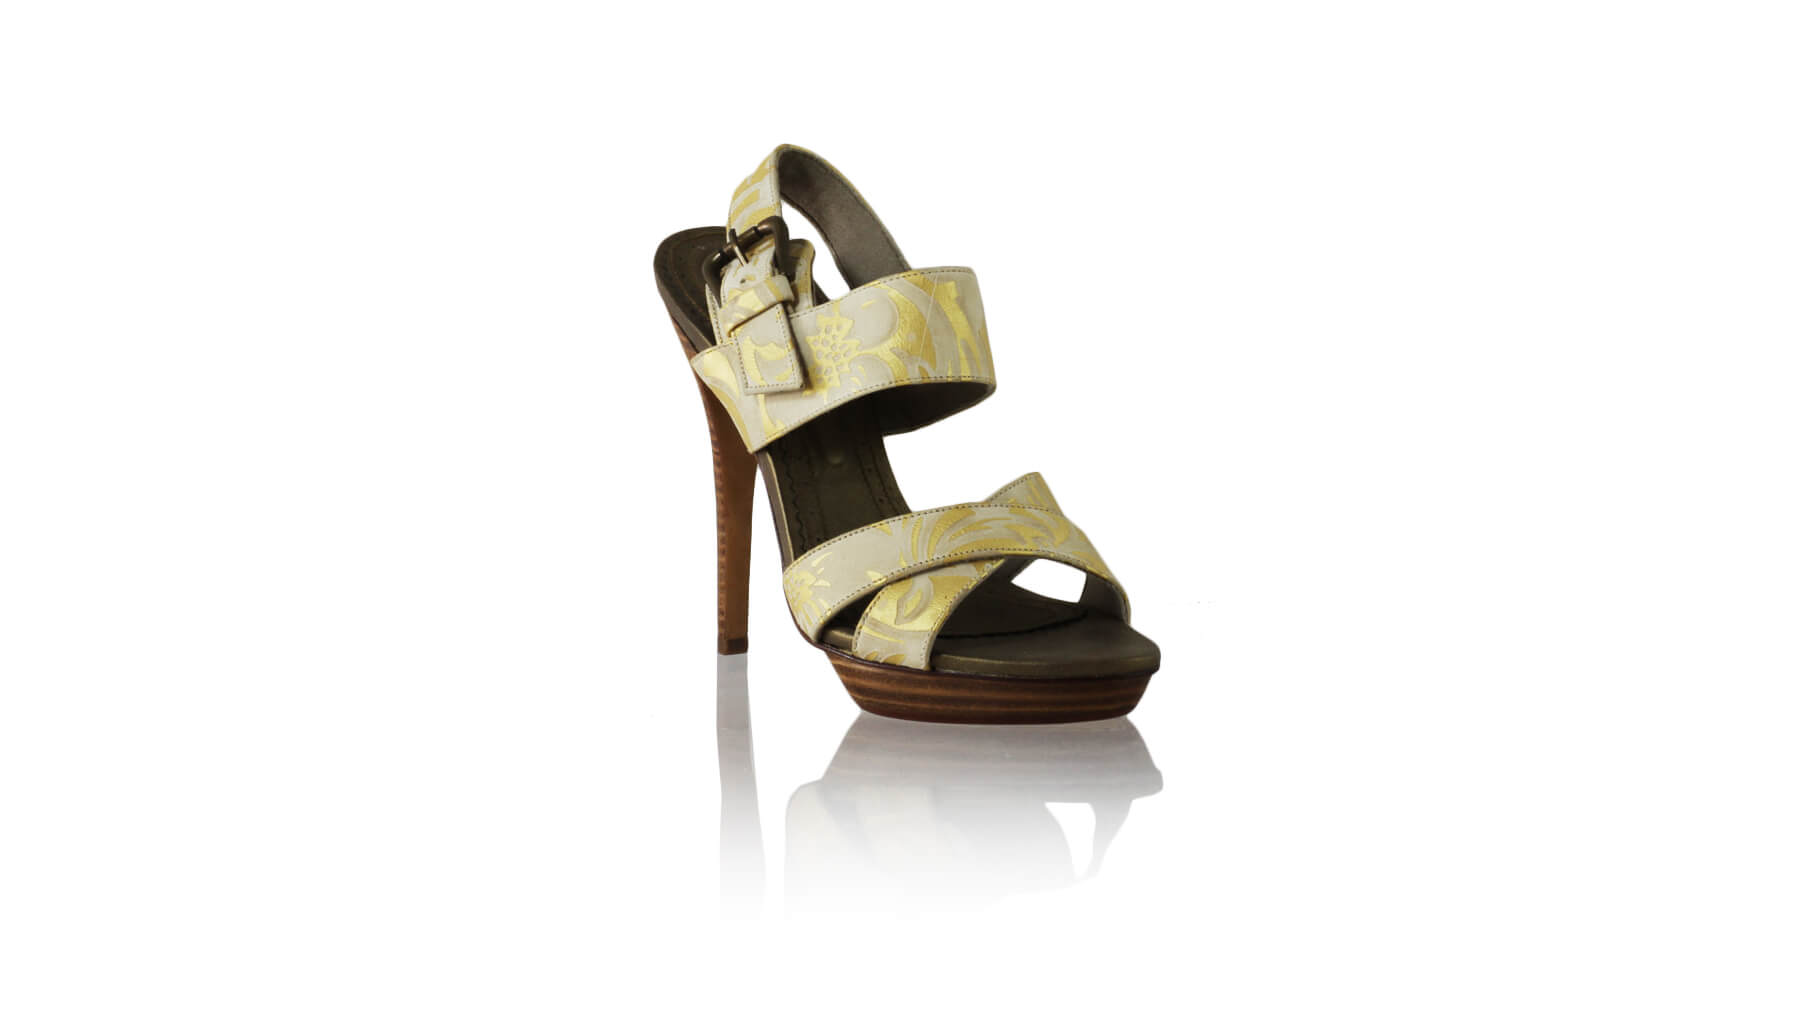 Leather-shoes-Tabitha 138mm SH PF - Bronze Cream & Gold Batik Print-sandals higheel-NILUH DJELANTIK-NILUH DJELANTIK